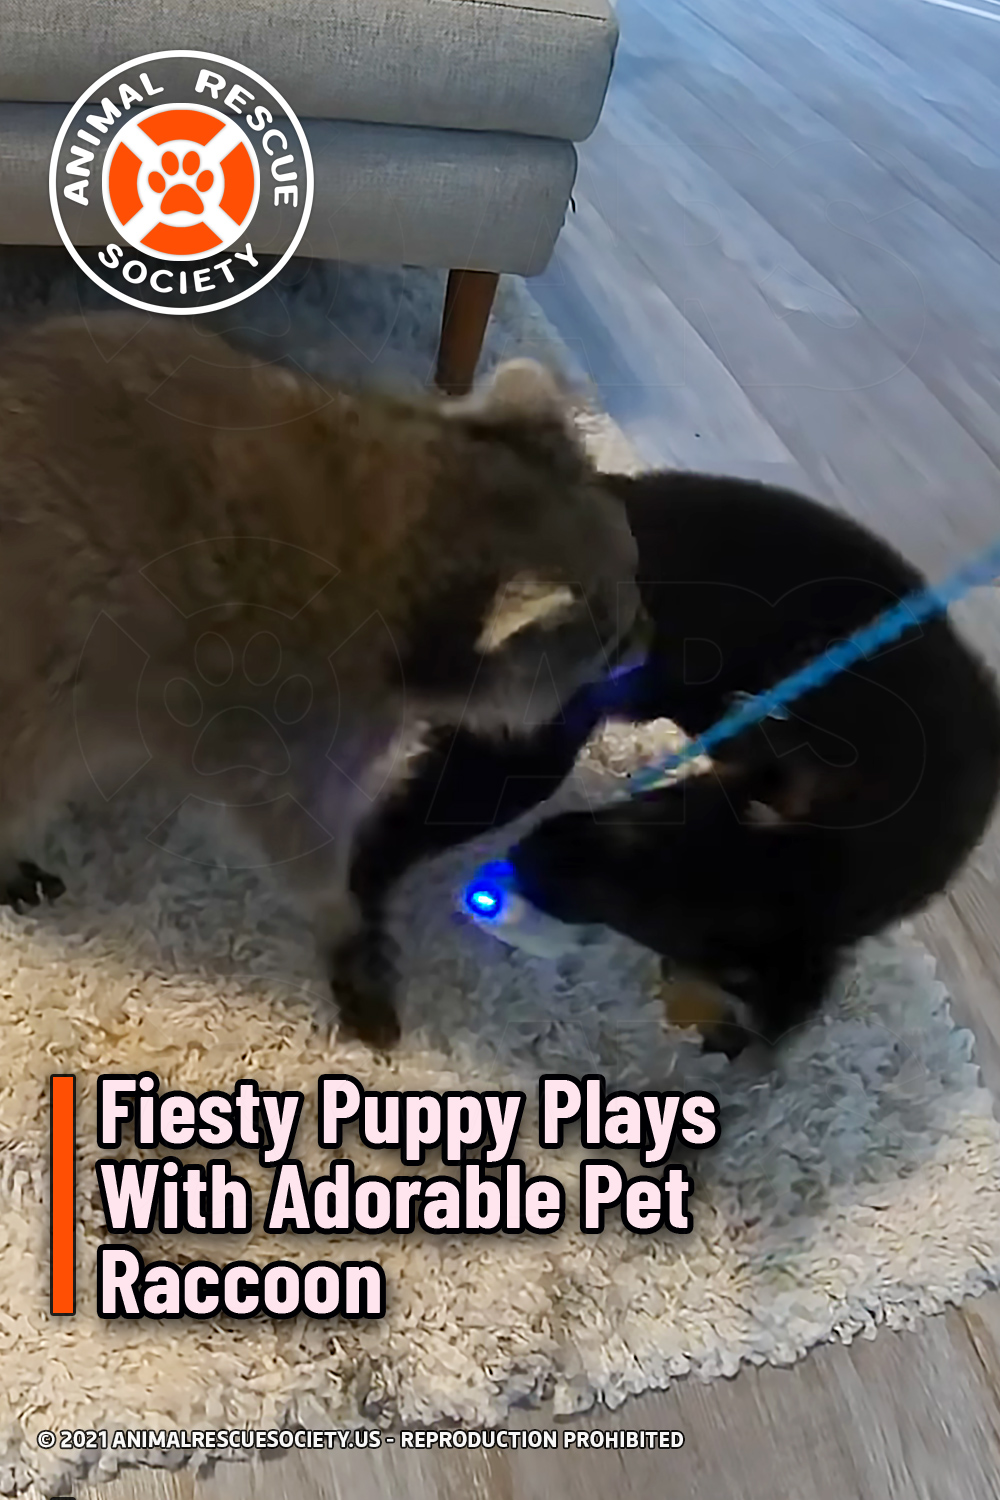 Fiesty Puppy Plays With Adorable Pet Raccoon